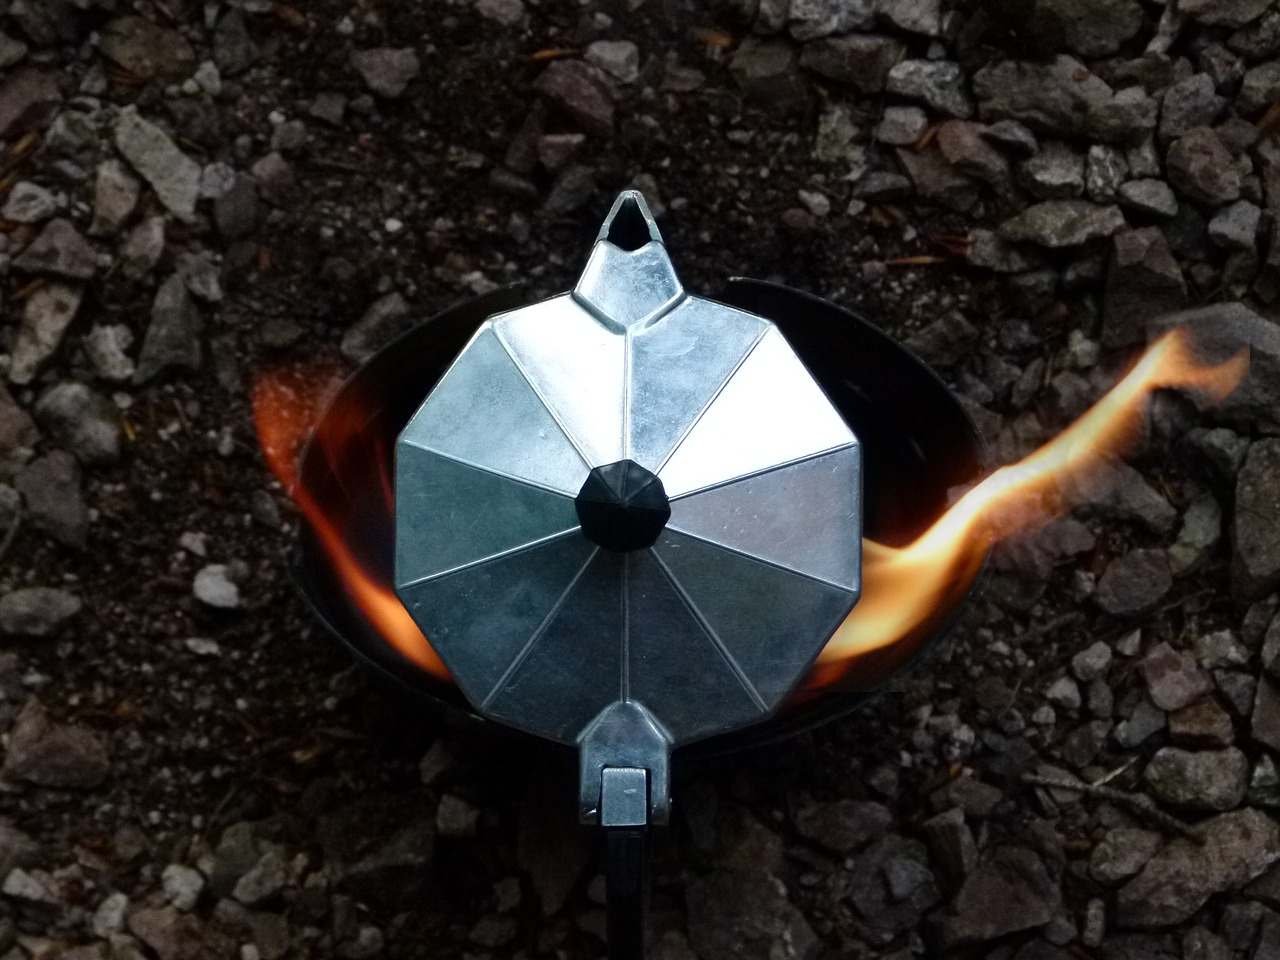 camping coffee maker placed in a fire